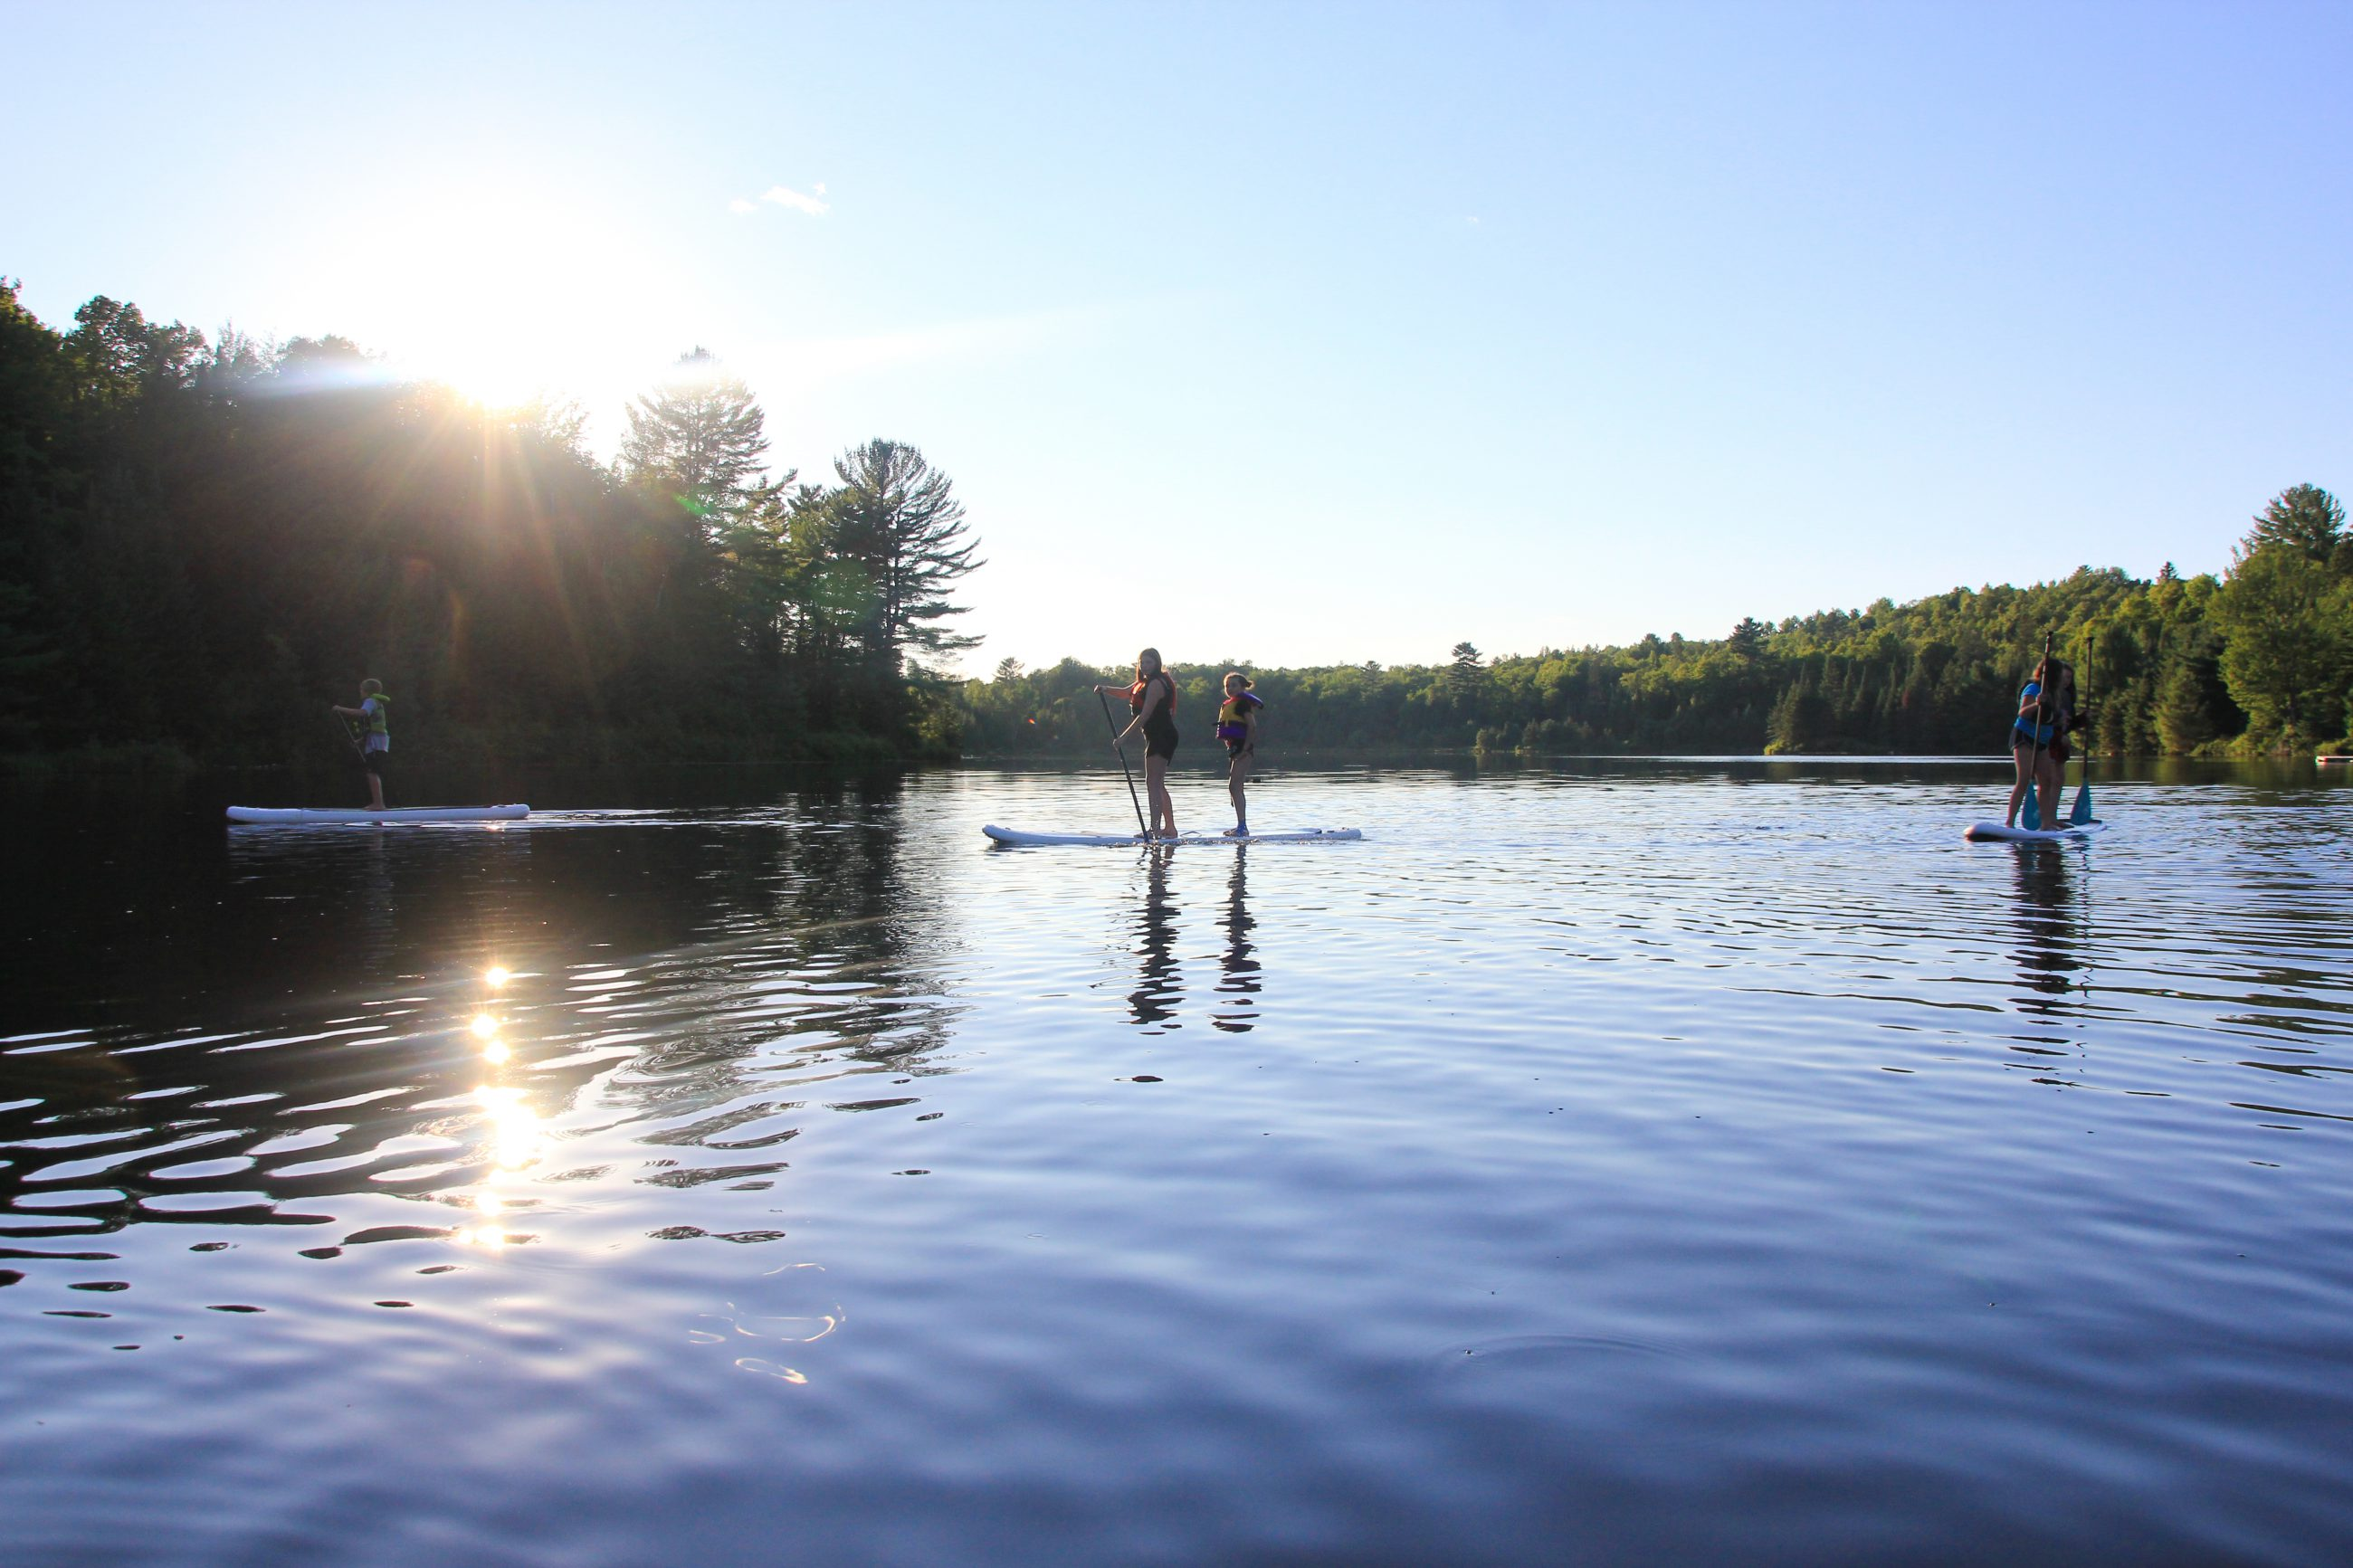 Campers out on a SUP board on calm water.